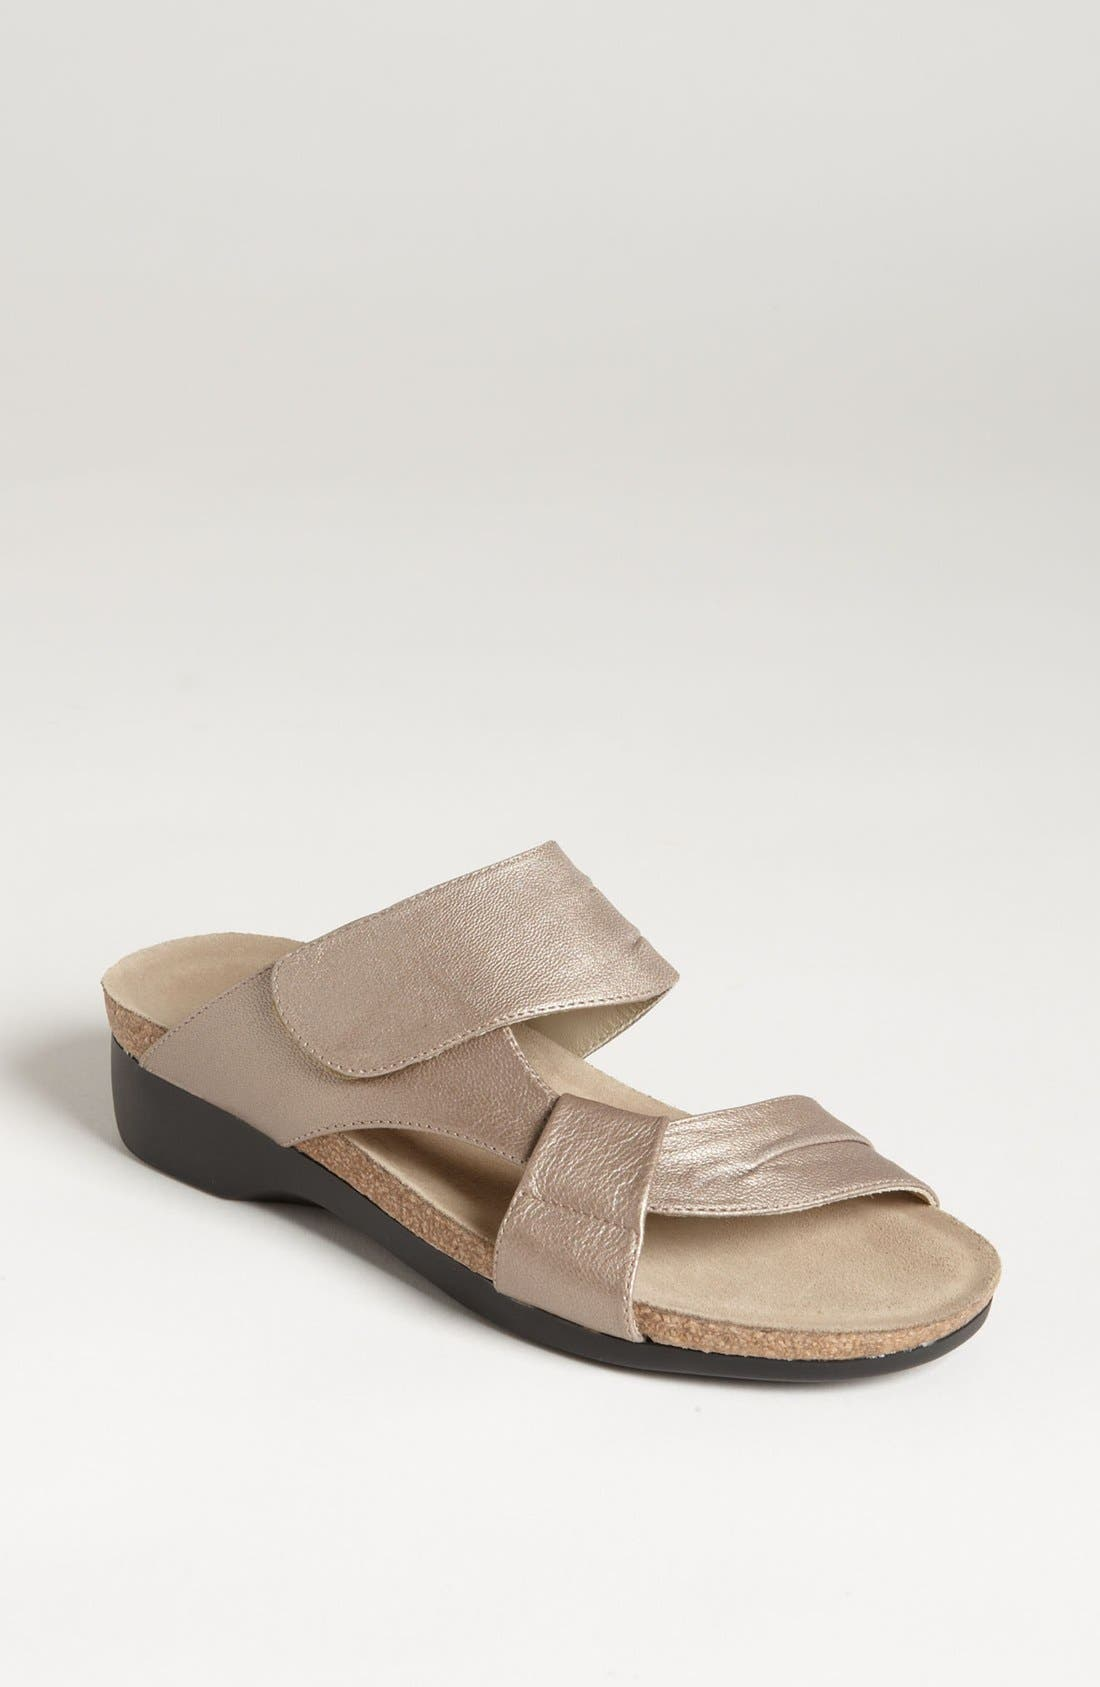 Alternate Image 1 Selected - Munro 'Libra' Sandal